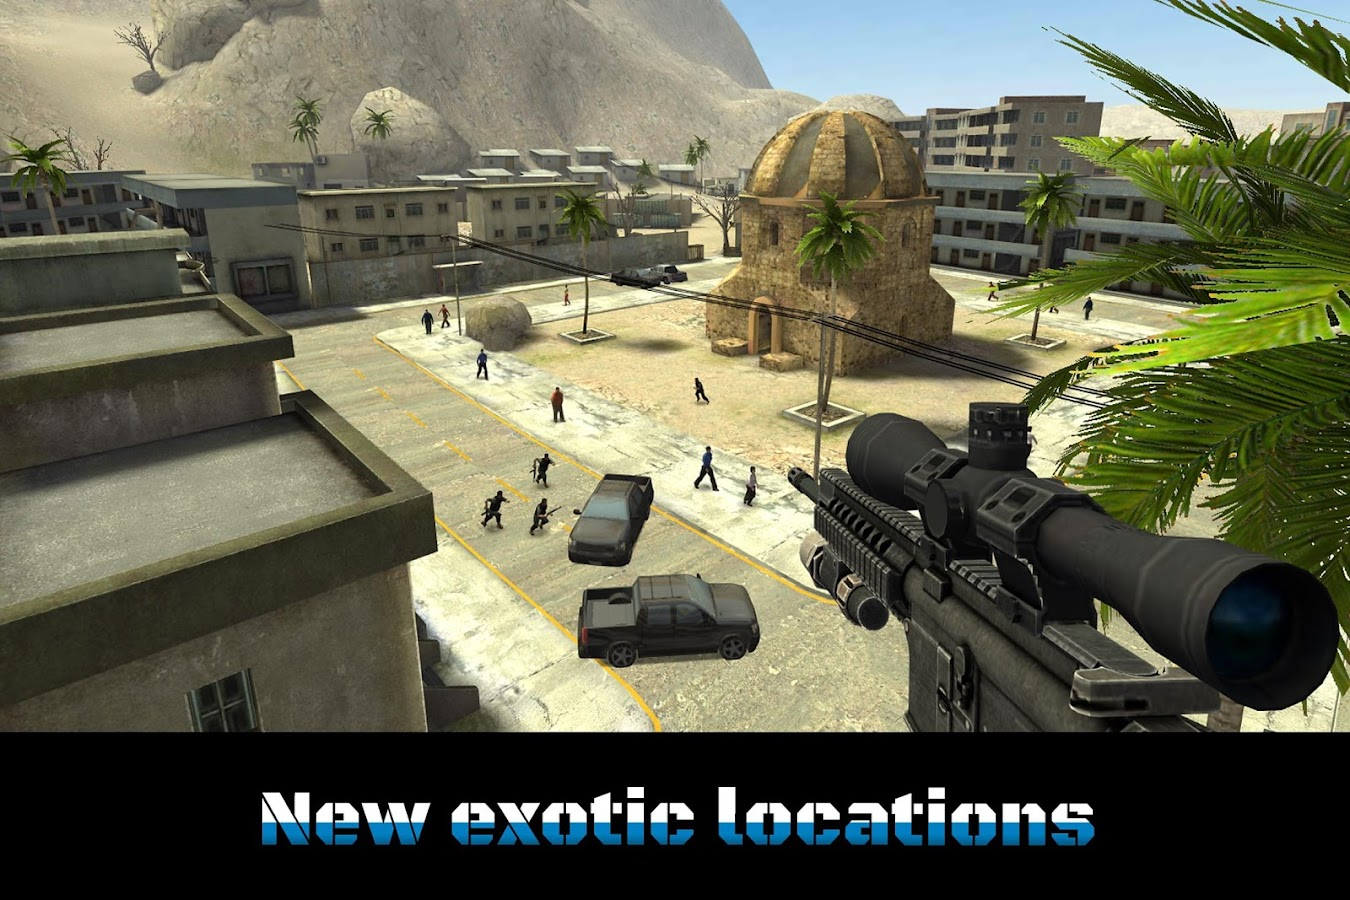 Sniper Ops - 3D Shooting Game Screenshot 9